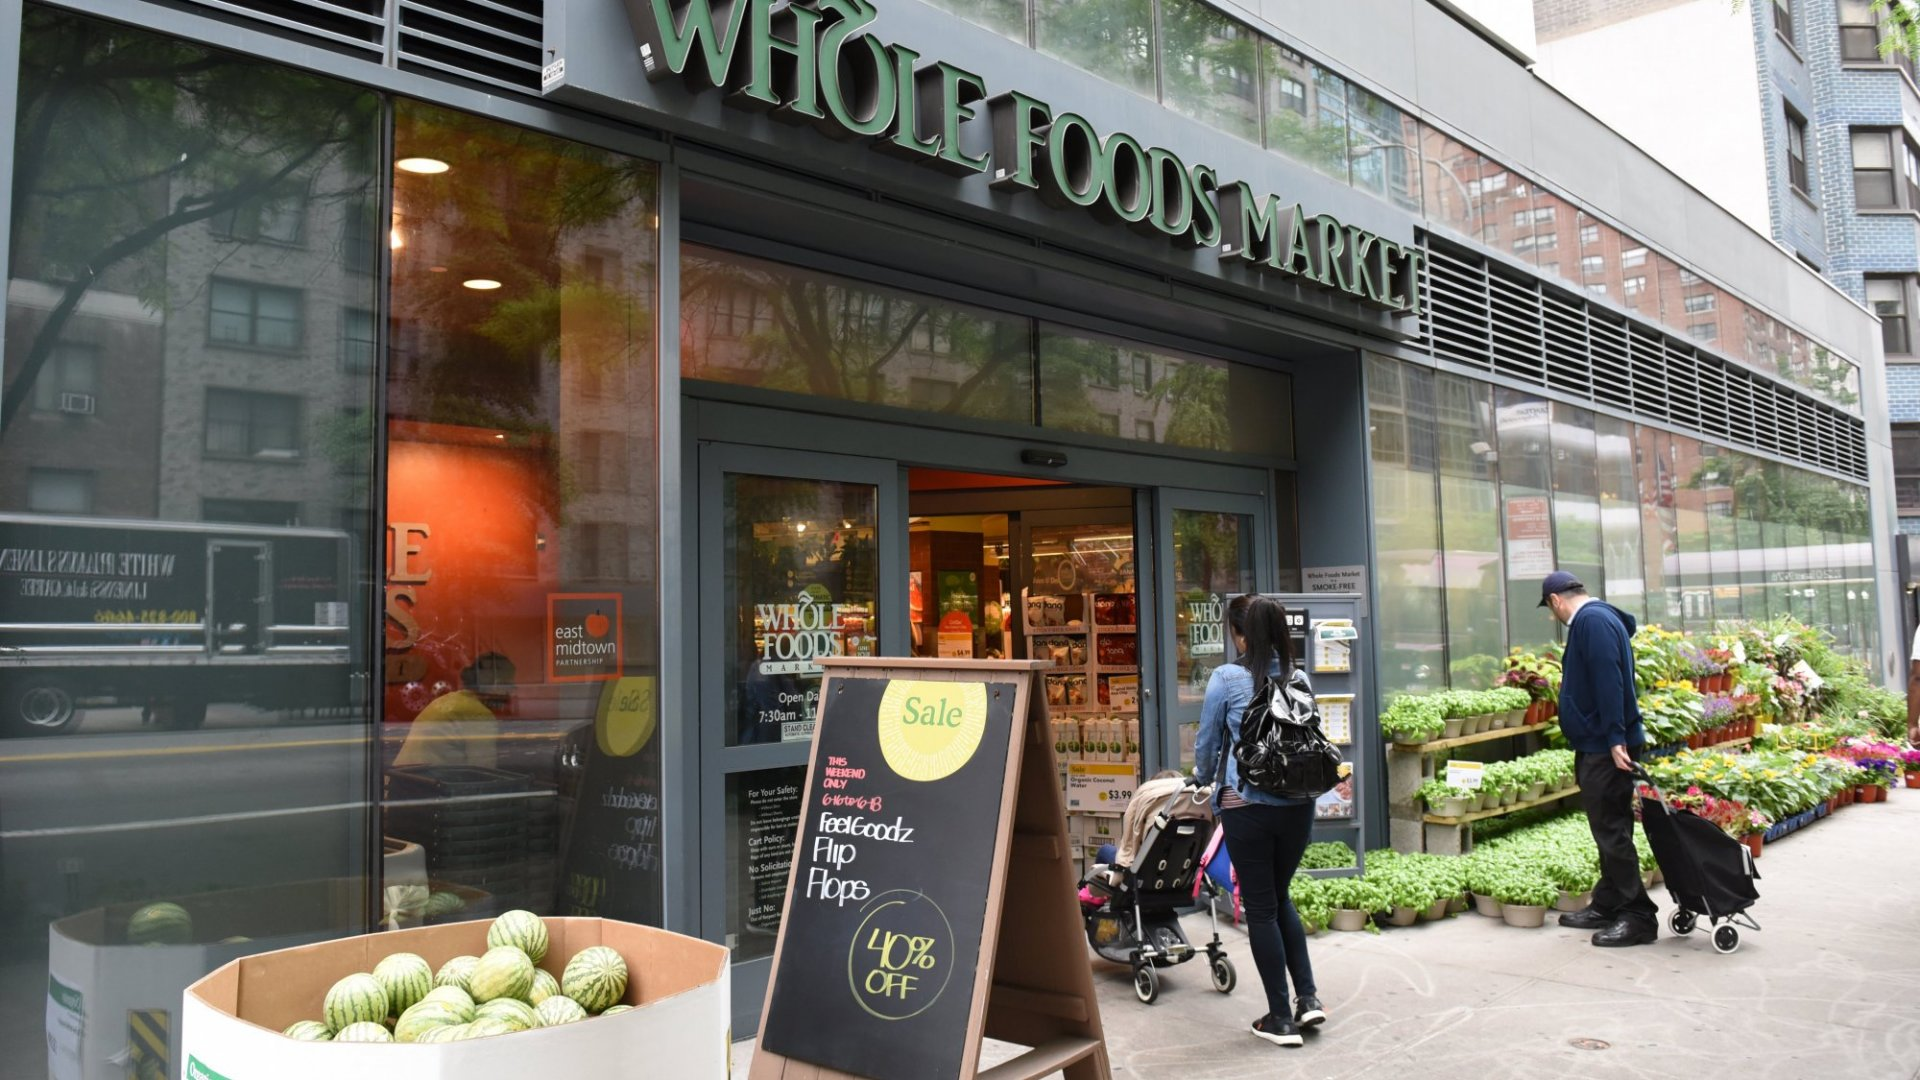 Jeff Bezos's Whole Foods Ambition: What Does it Mean for Amazon?